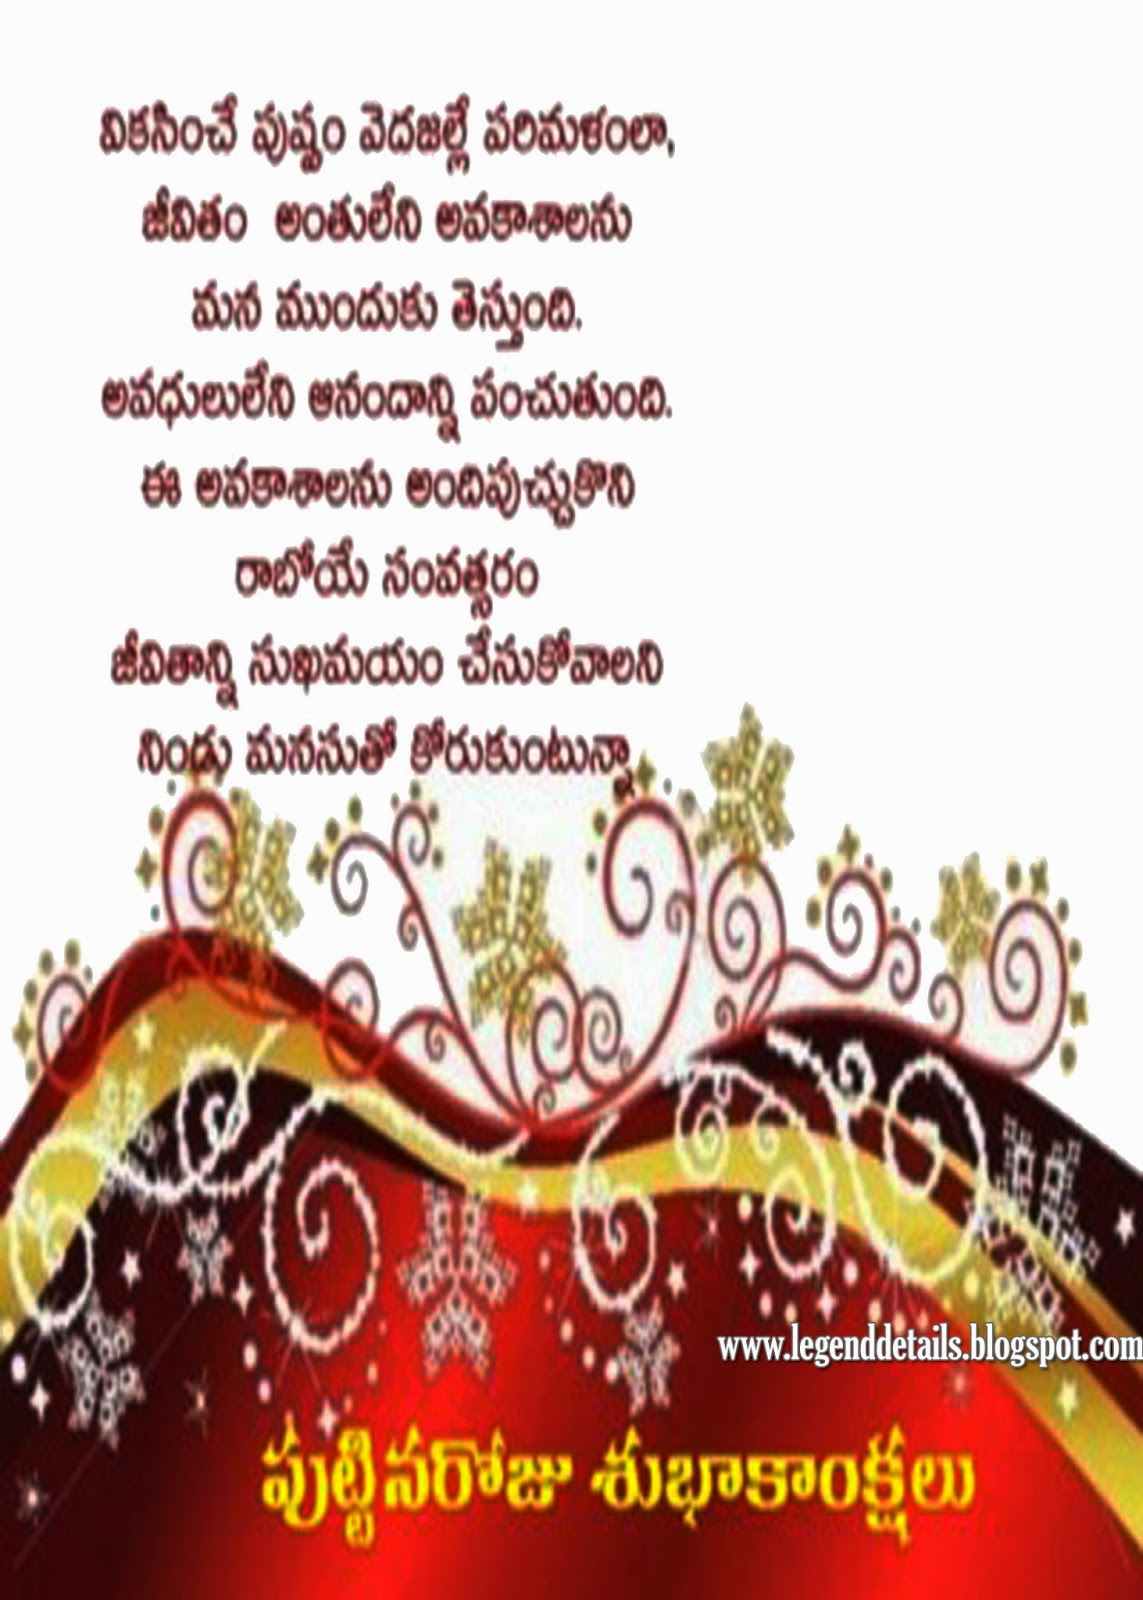 Birth day greetings in telugu free subhakankshalu with images birth day greetings for sister in telugu kristyandbryce Gallery